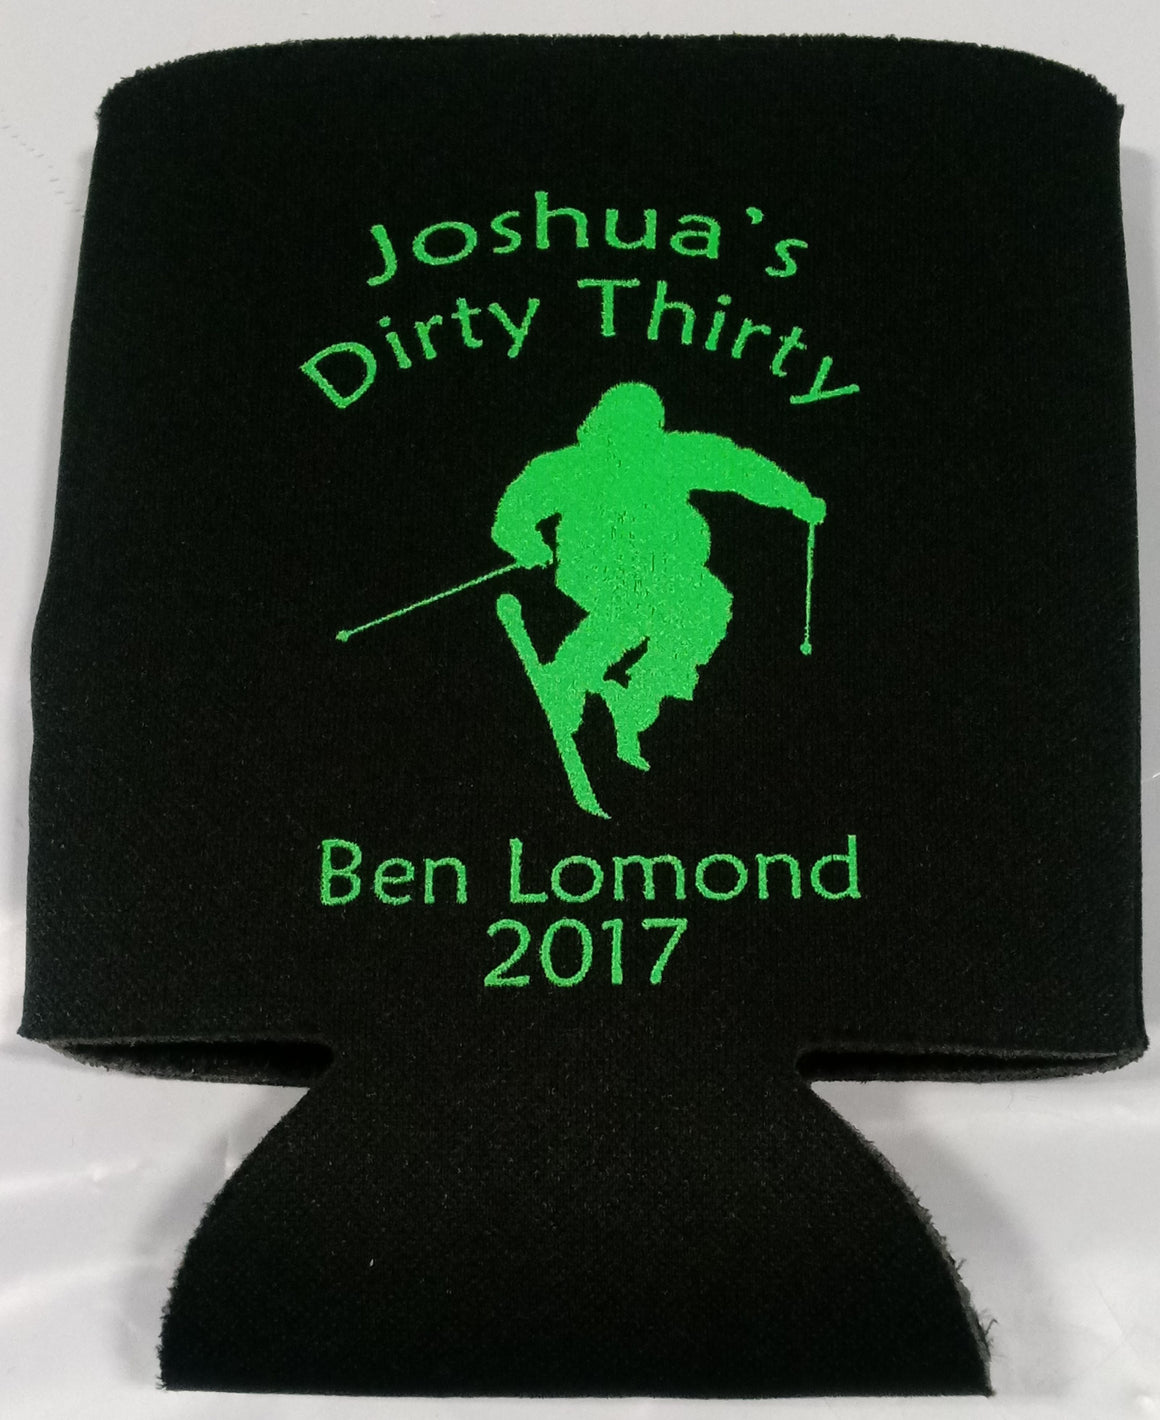 Dirty Thirty Ski trip Koozie personalized can coolers